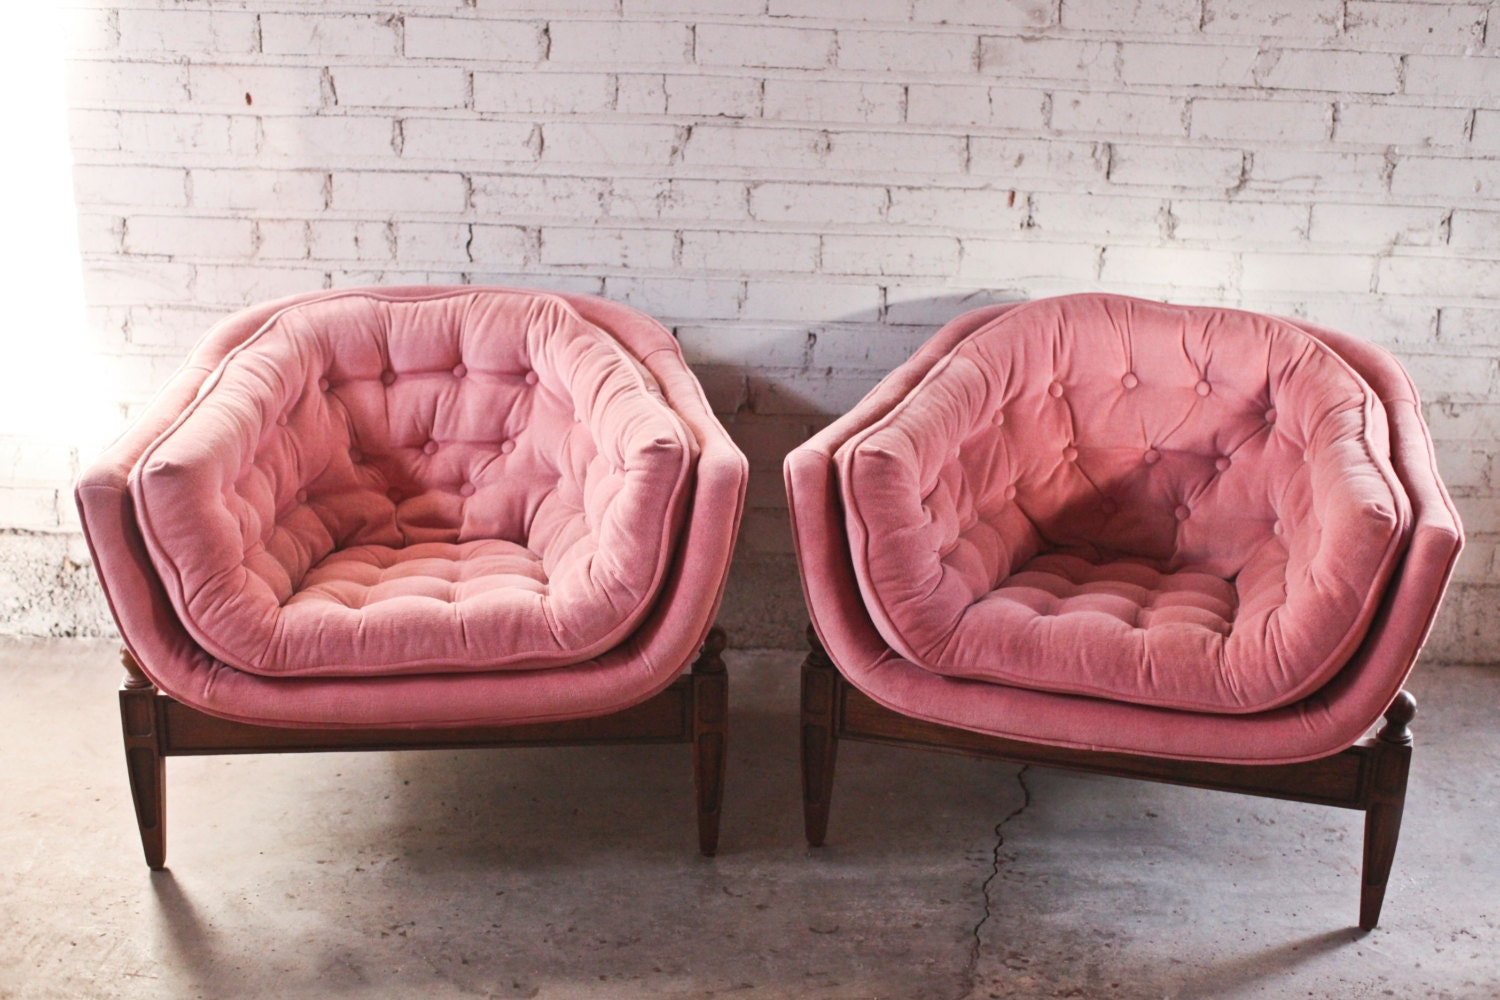 Greyhound Shipping Quote >> Pair 1960s Vintage Three Legged Tufted Tub Chair Pink Velvet